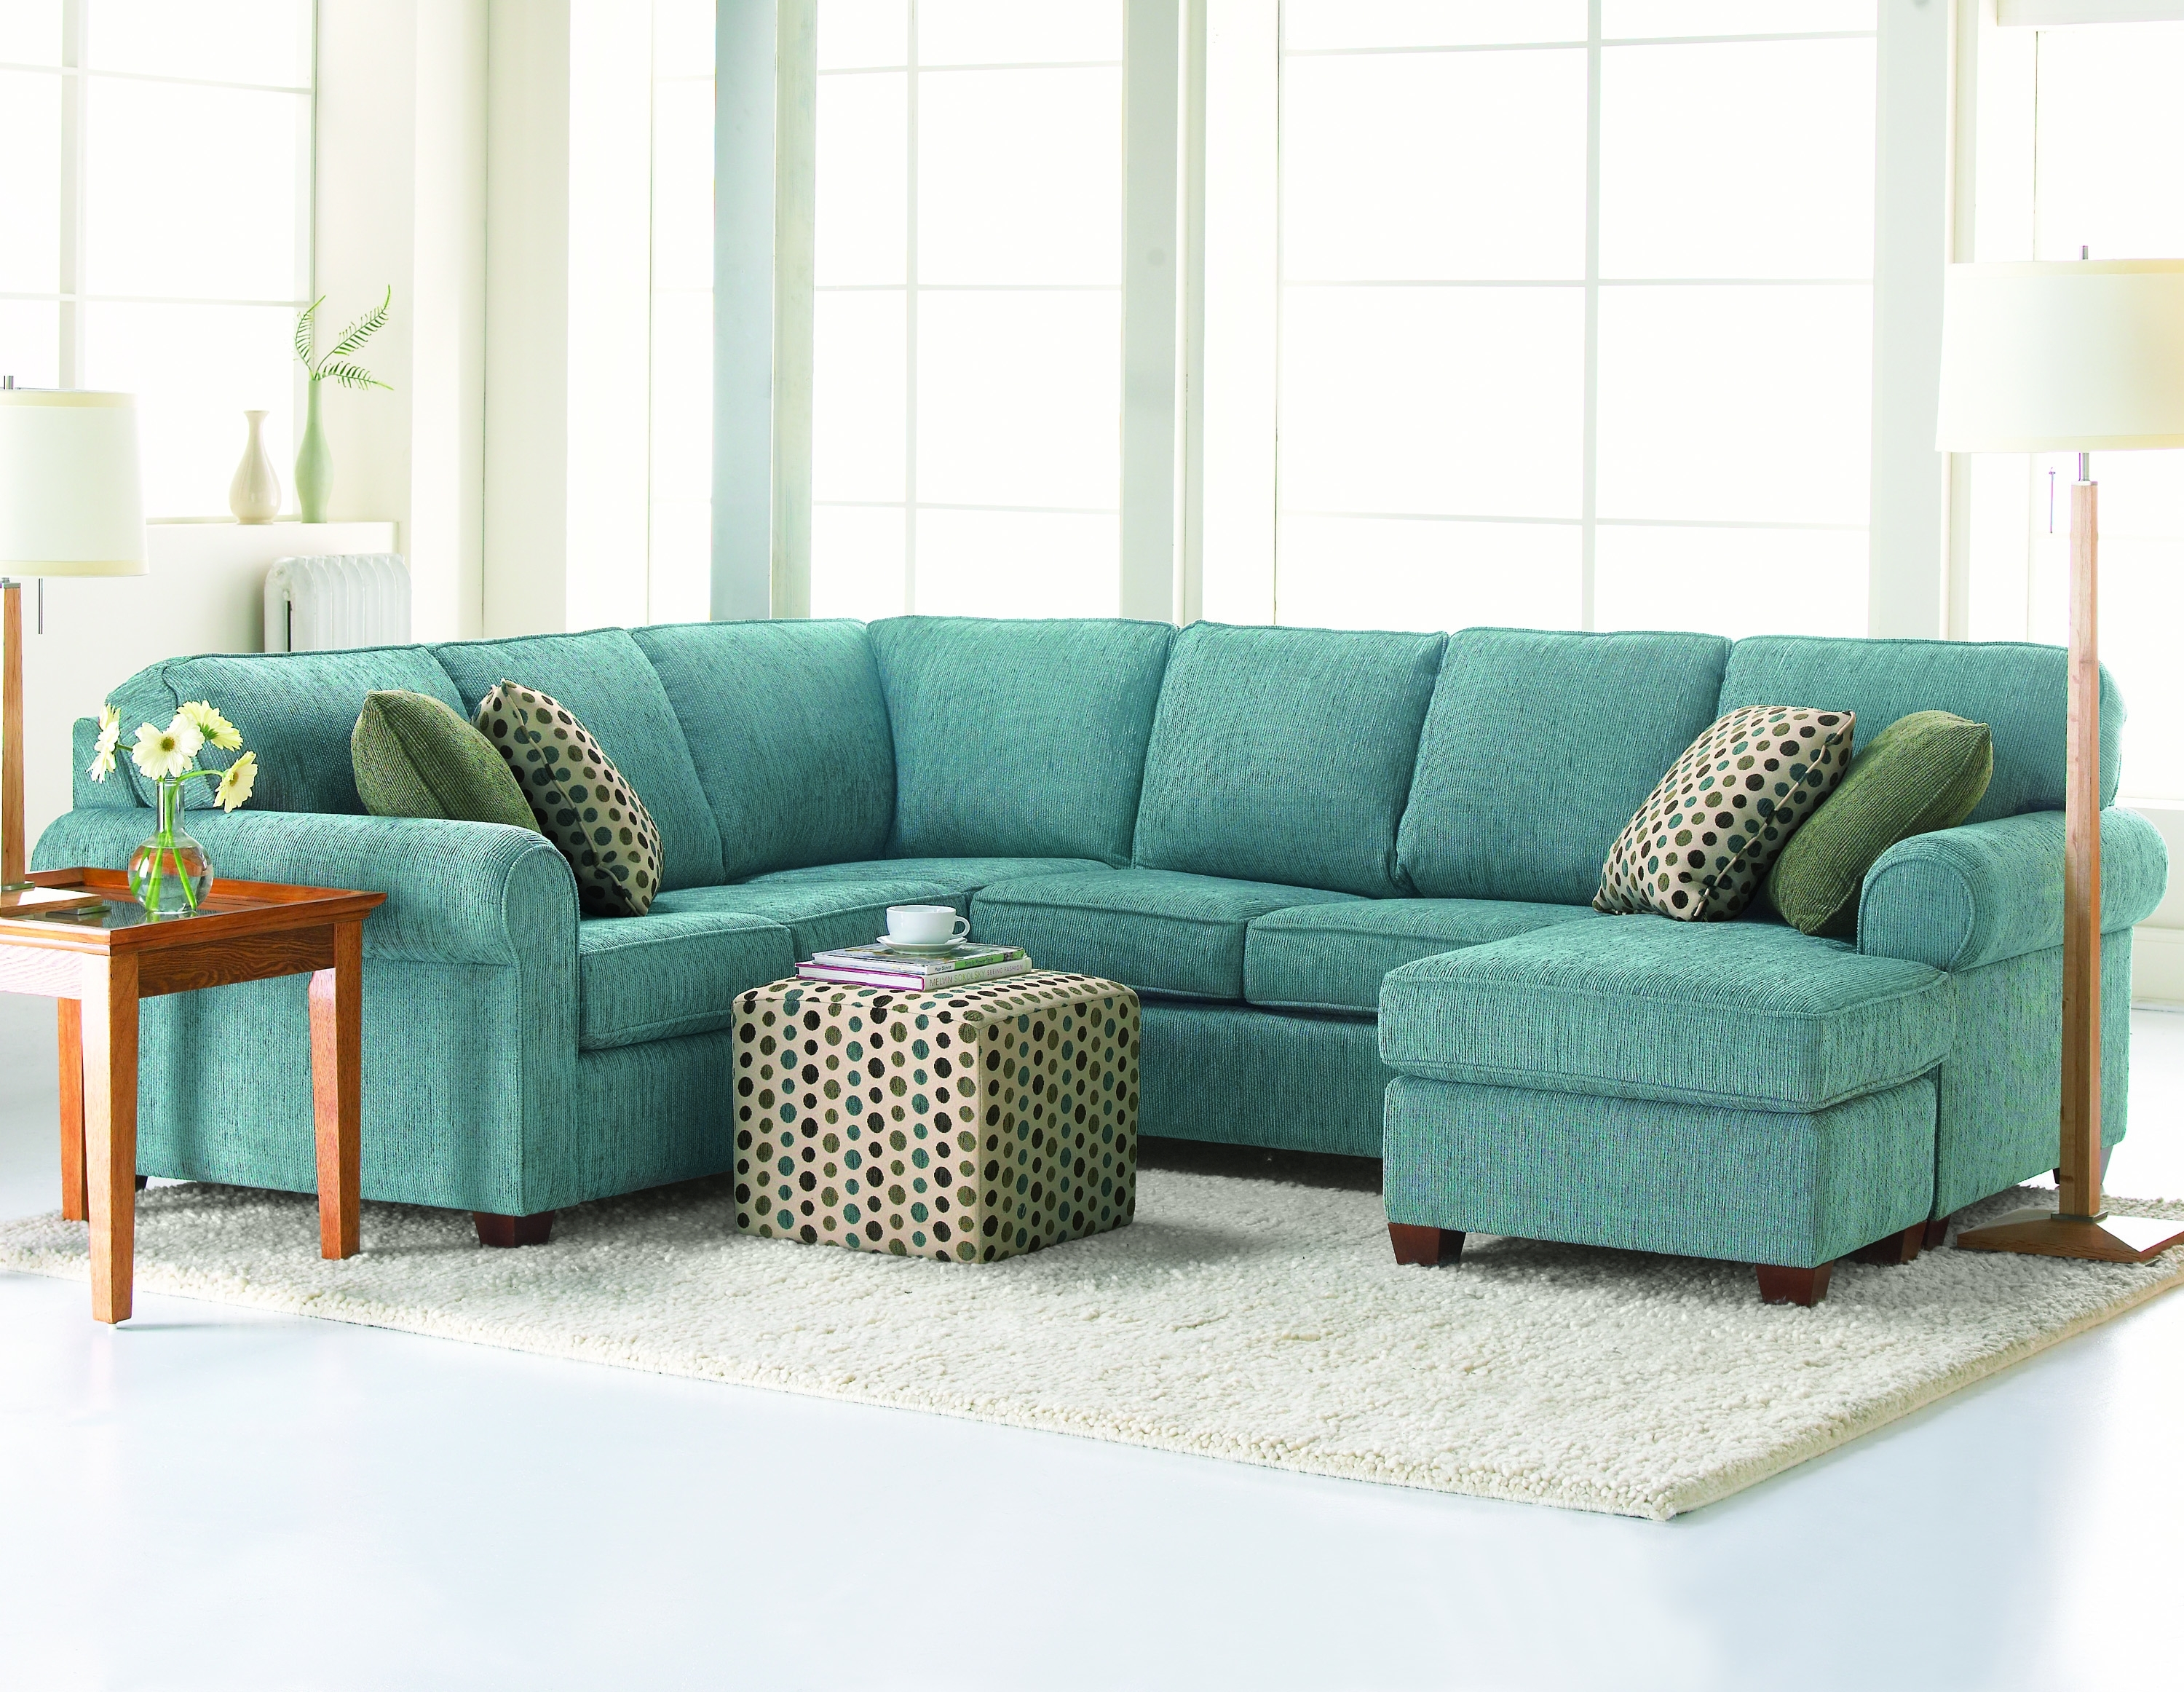 Sectional Sofas - Thompson Brothers Furniture within Ontario Sectional Sofas (Image 9 of 10)